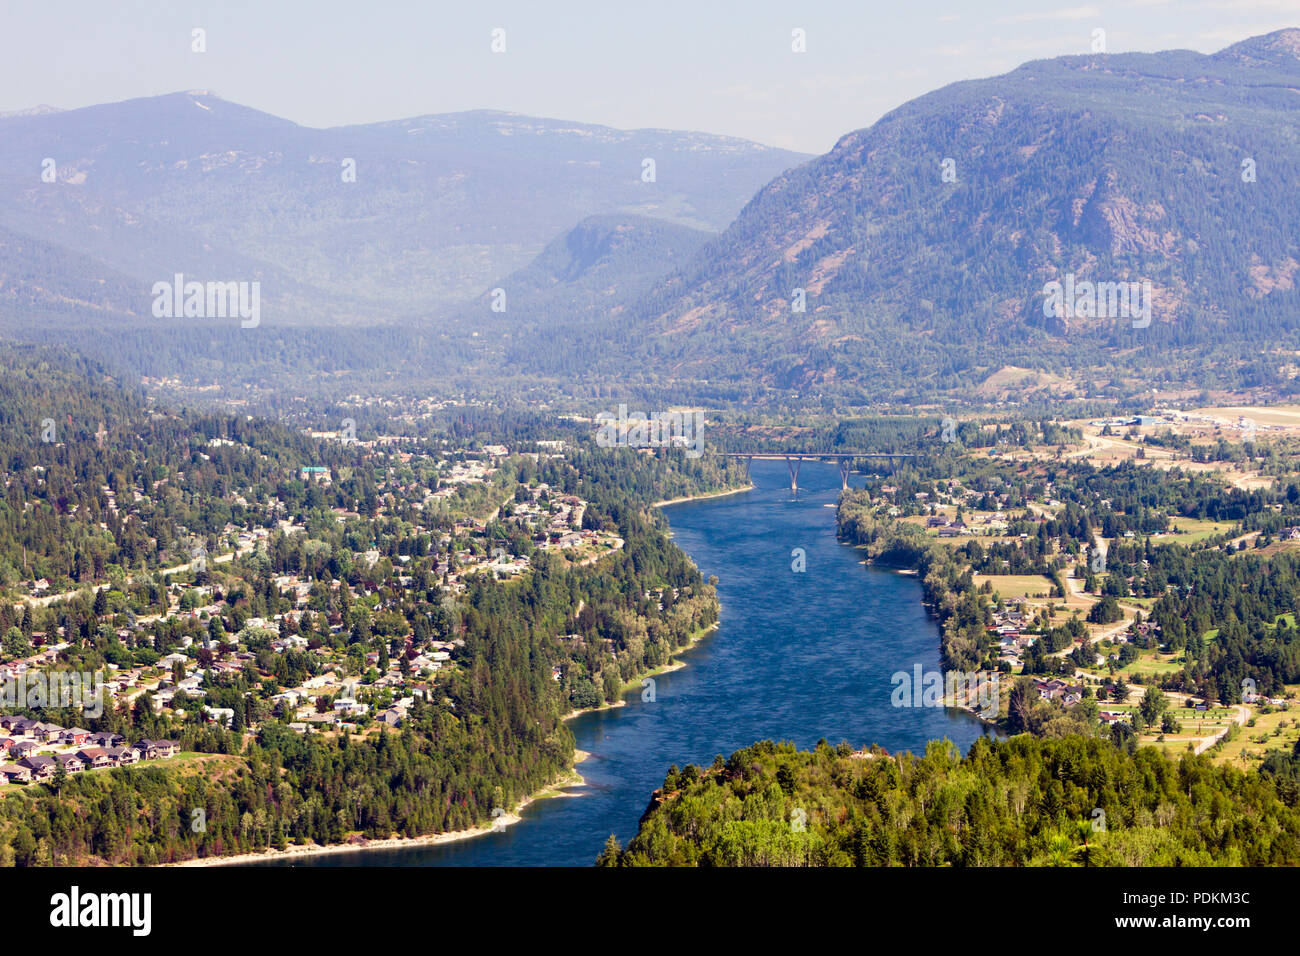 View of the Columbia River and Selkirk Mountains in Castlegar, West Kootenay, British Columbia, Canada. - Stock Image